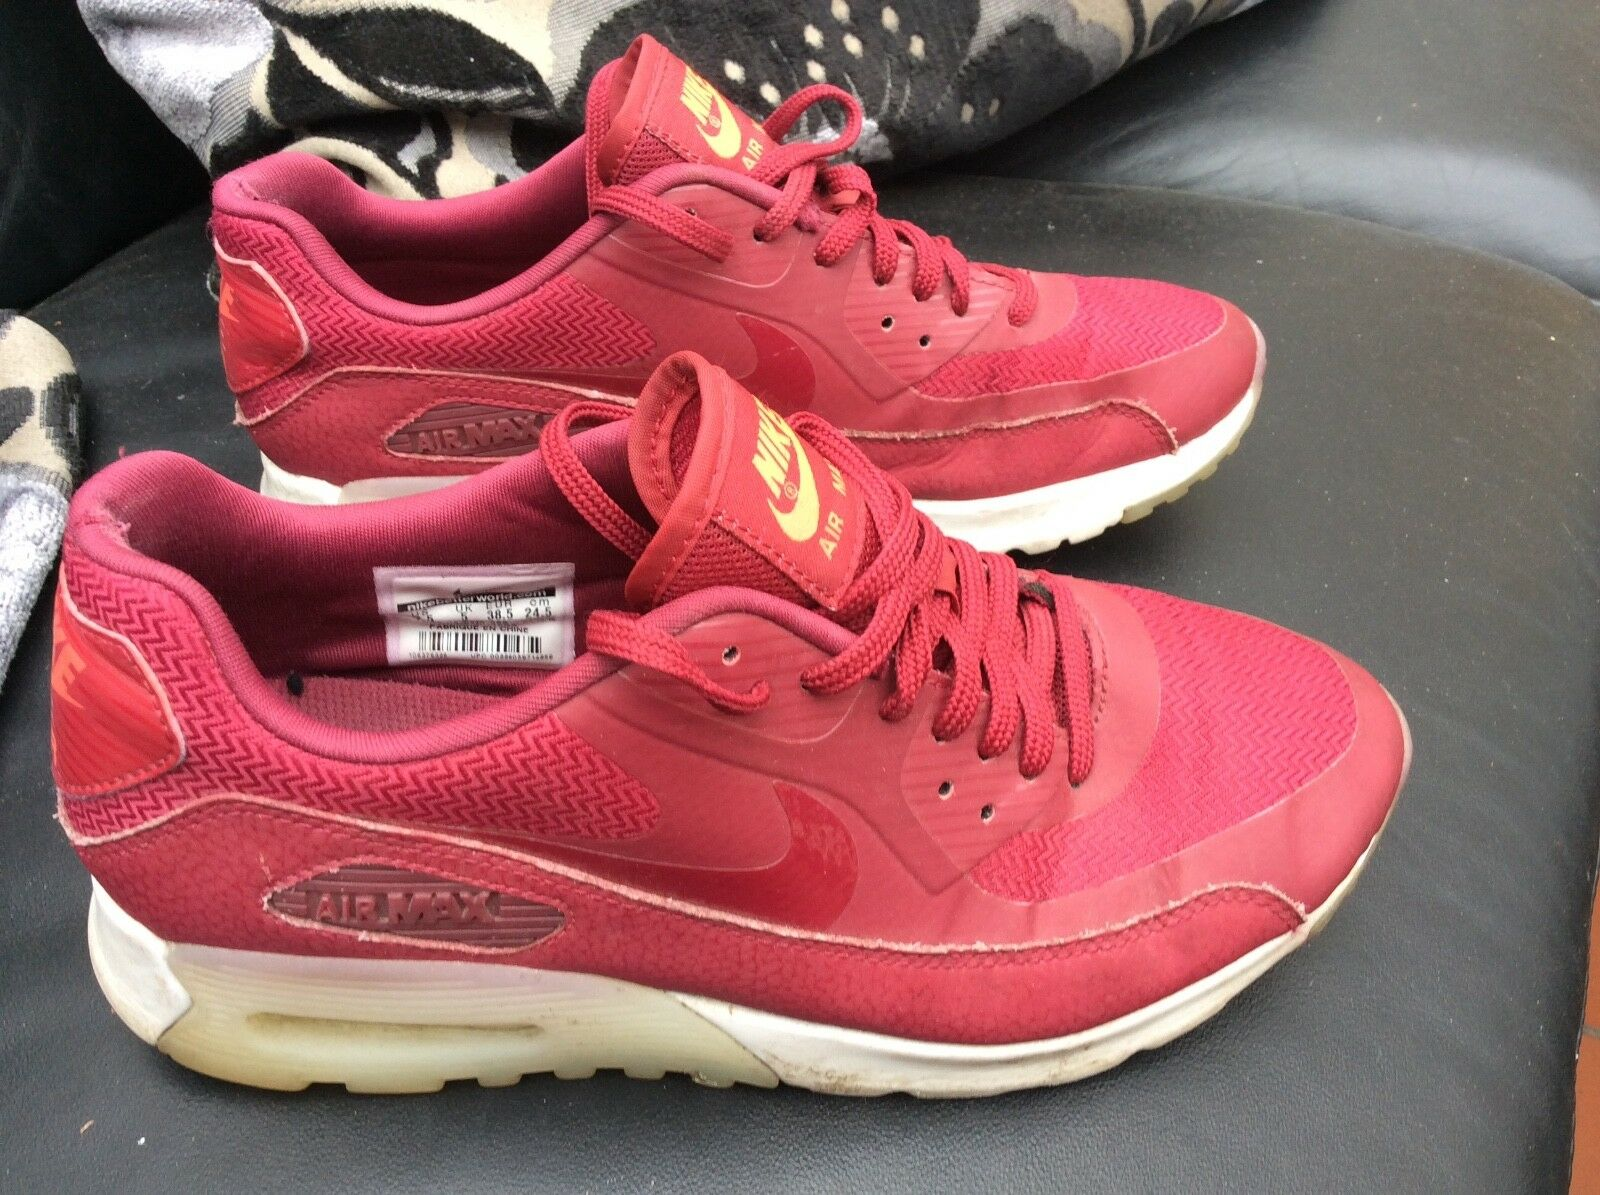 Ladies Girls  Nike Air Max Trainers Comfortable Comfortable and good-looking